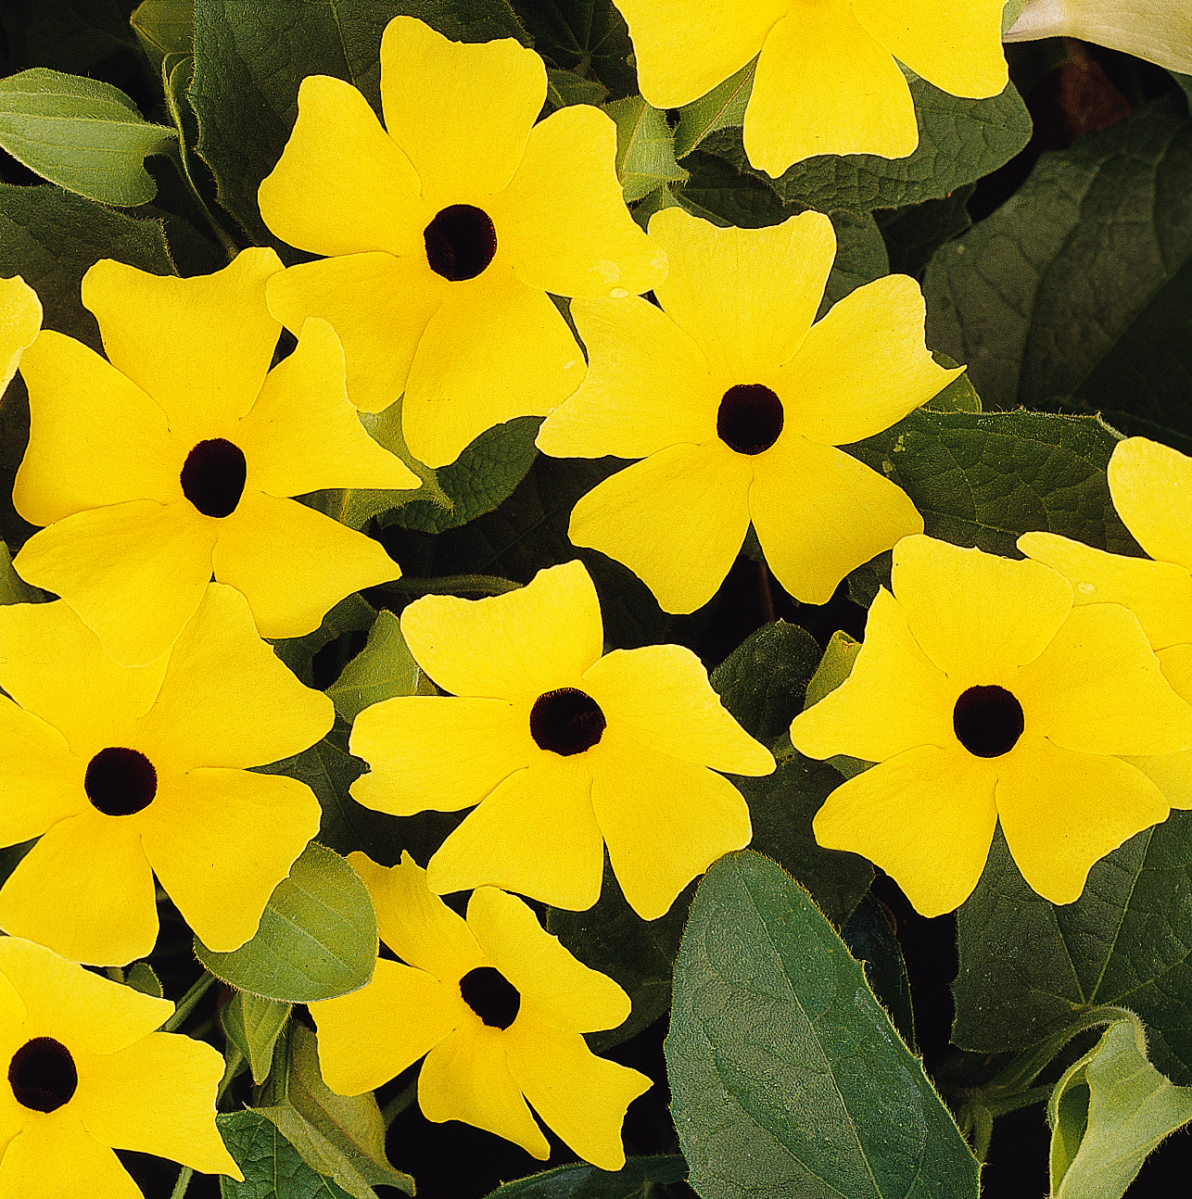 A yellow vine with a black center